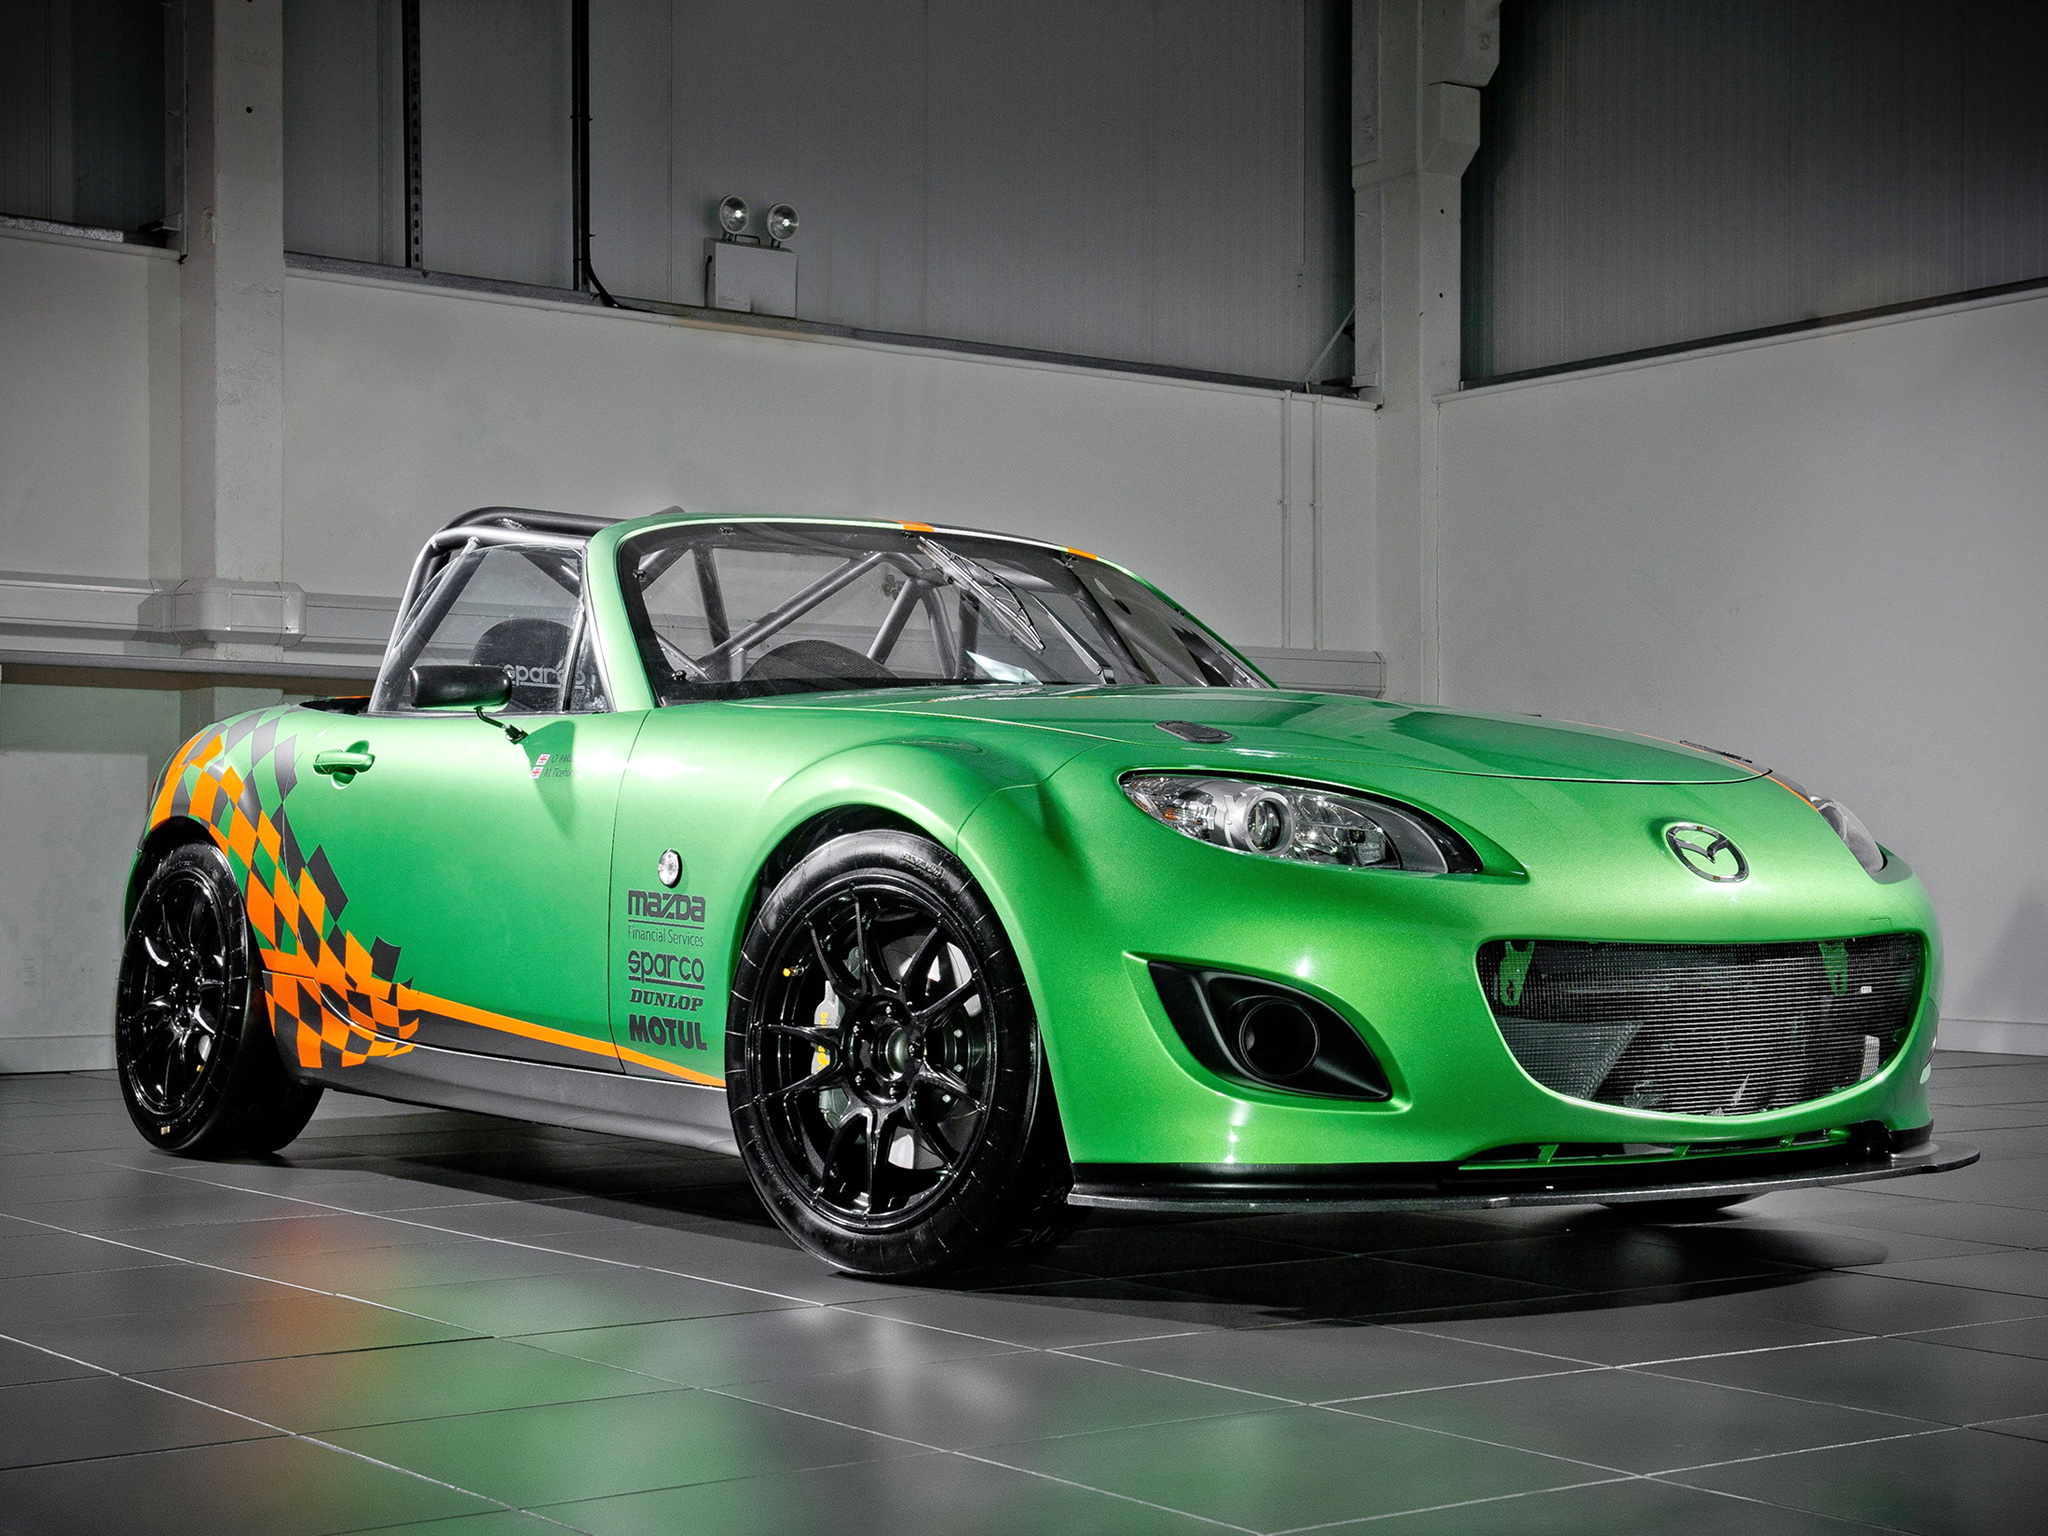 2011 mazda mx 5 g t nc2 tuning race racing g wallpaper 2048x1536 119695 wallpaperup. Black Bedroom Furniture Sets. Home Design Ideas